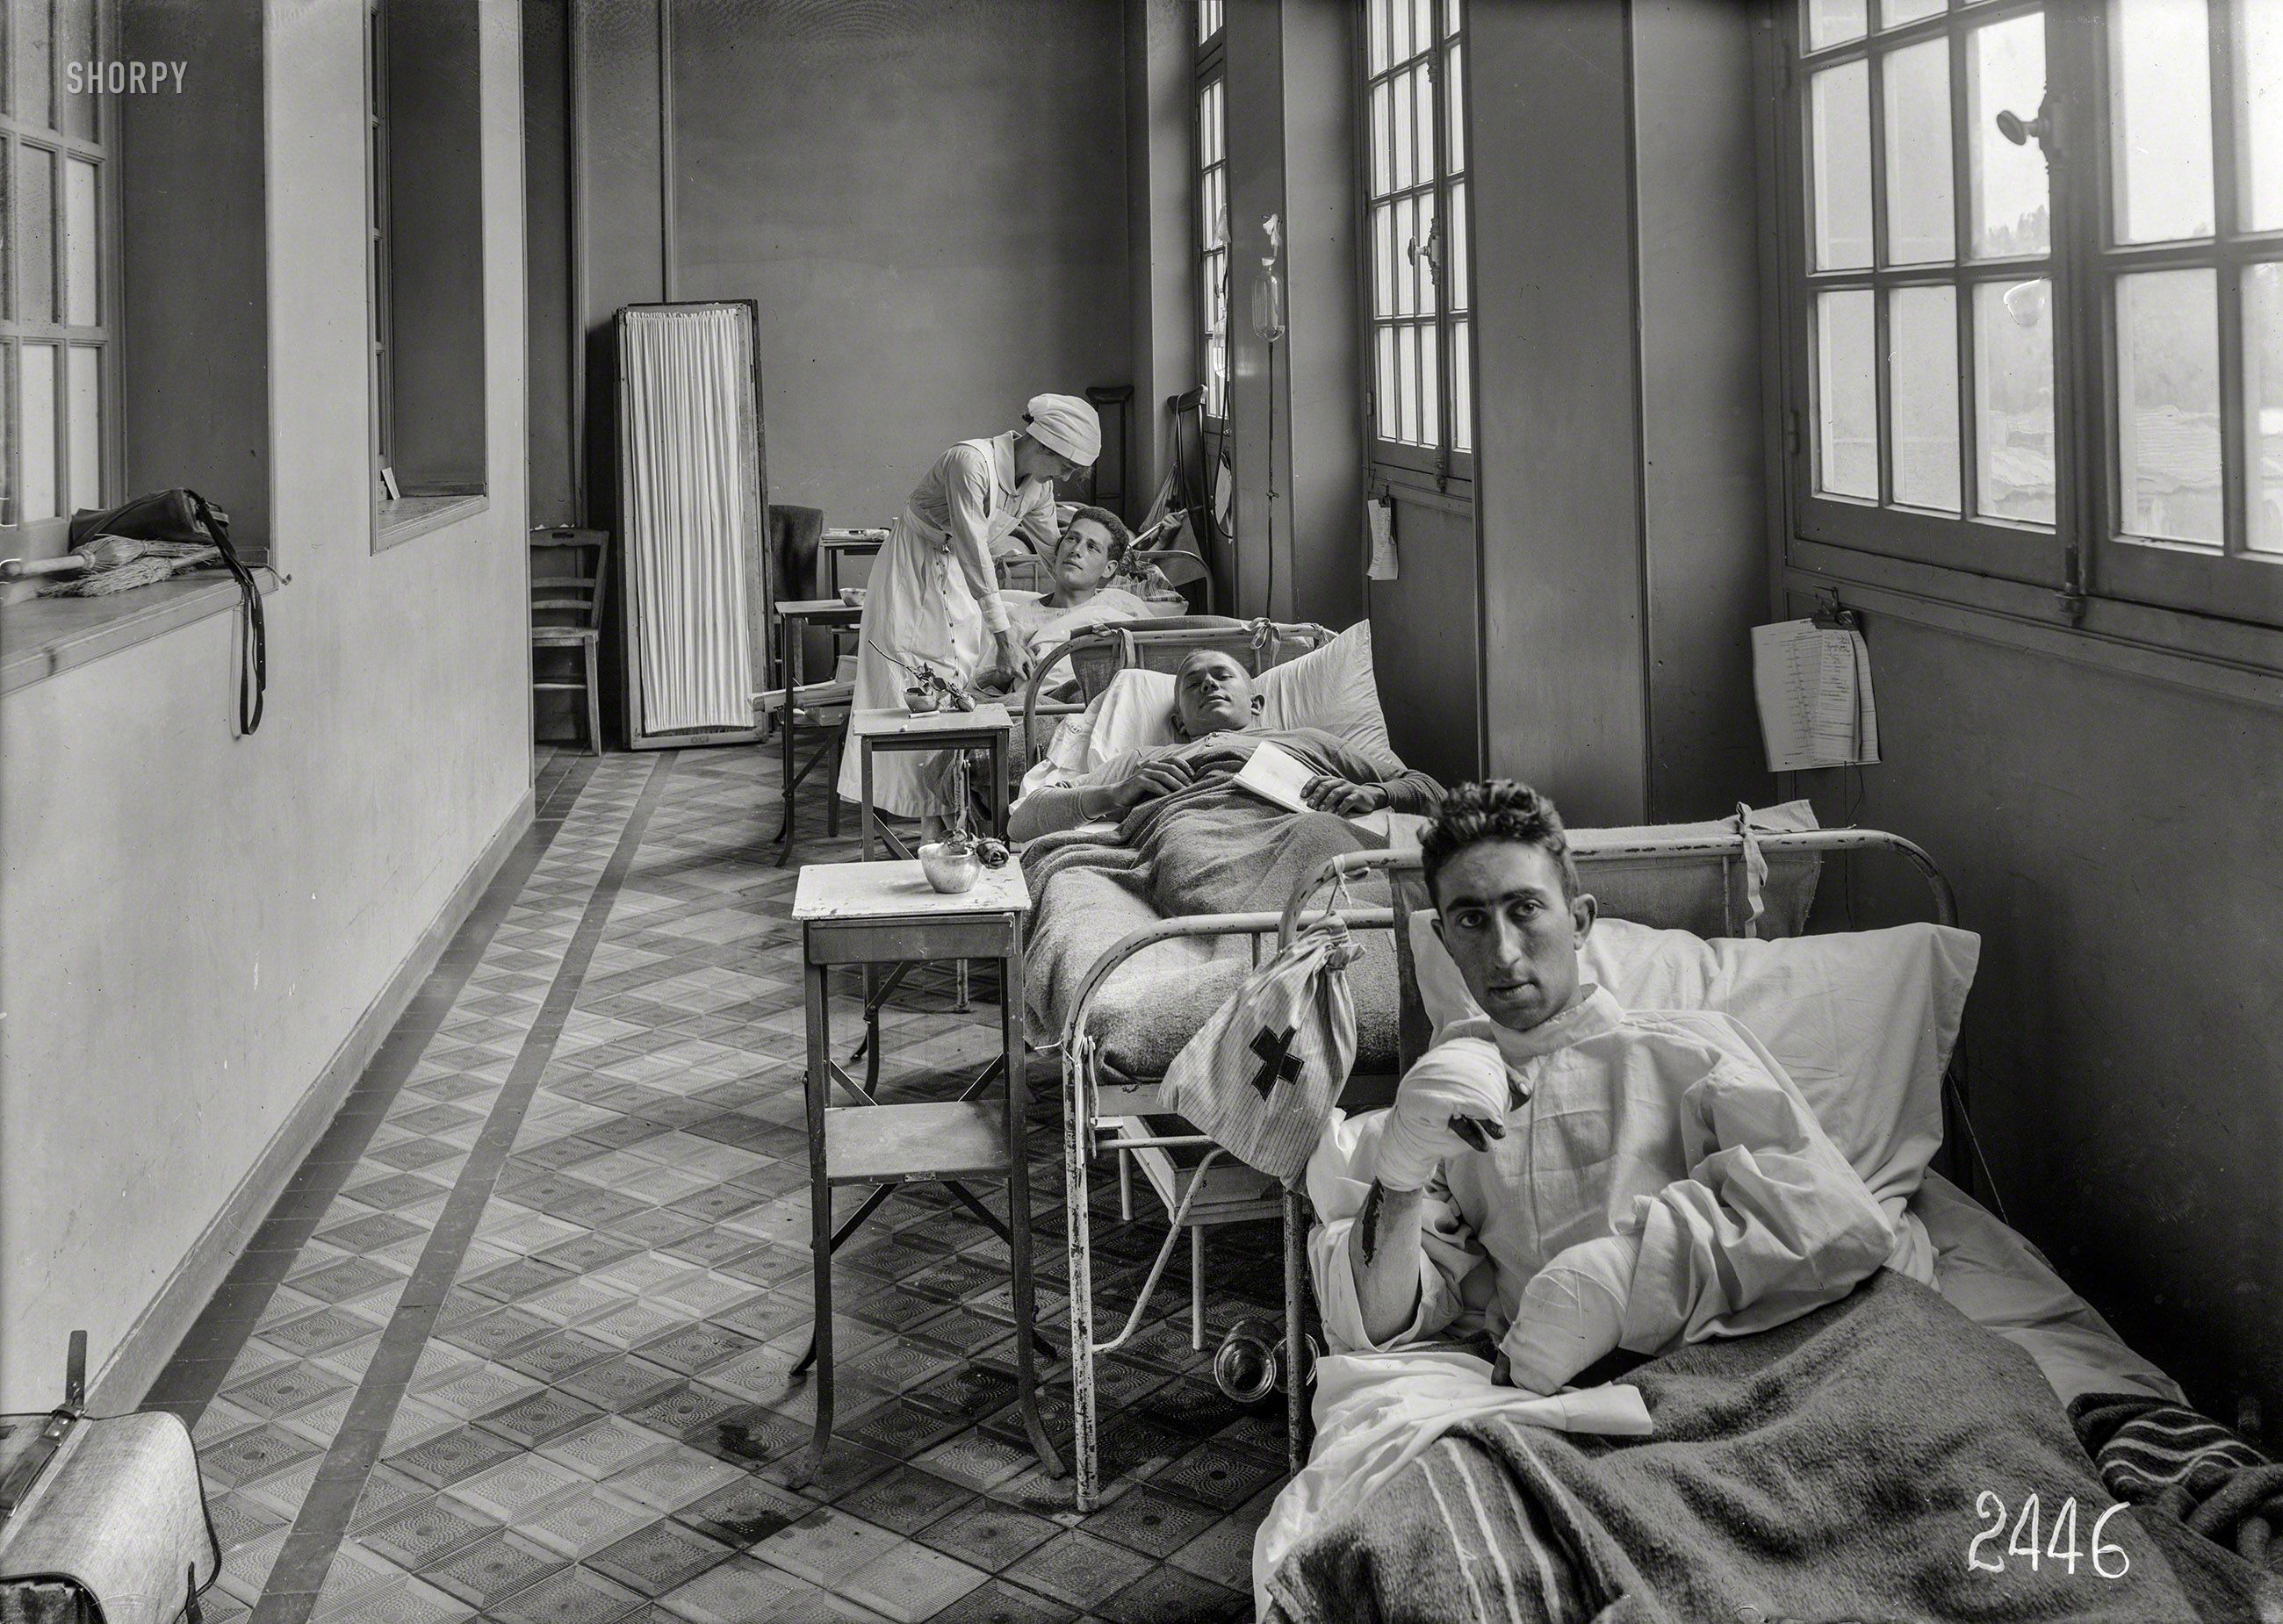 """WORLD WAR I: June 14, 1918. """"Scene in corridor of American Military Hospital No. 1 at Neuilly, France."""" Photo by Lewis Hine for the American Red Cross."""